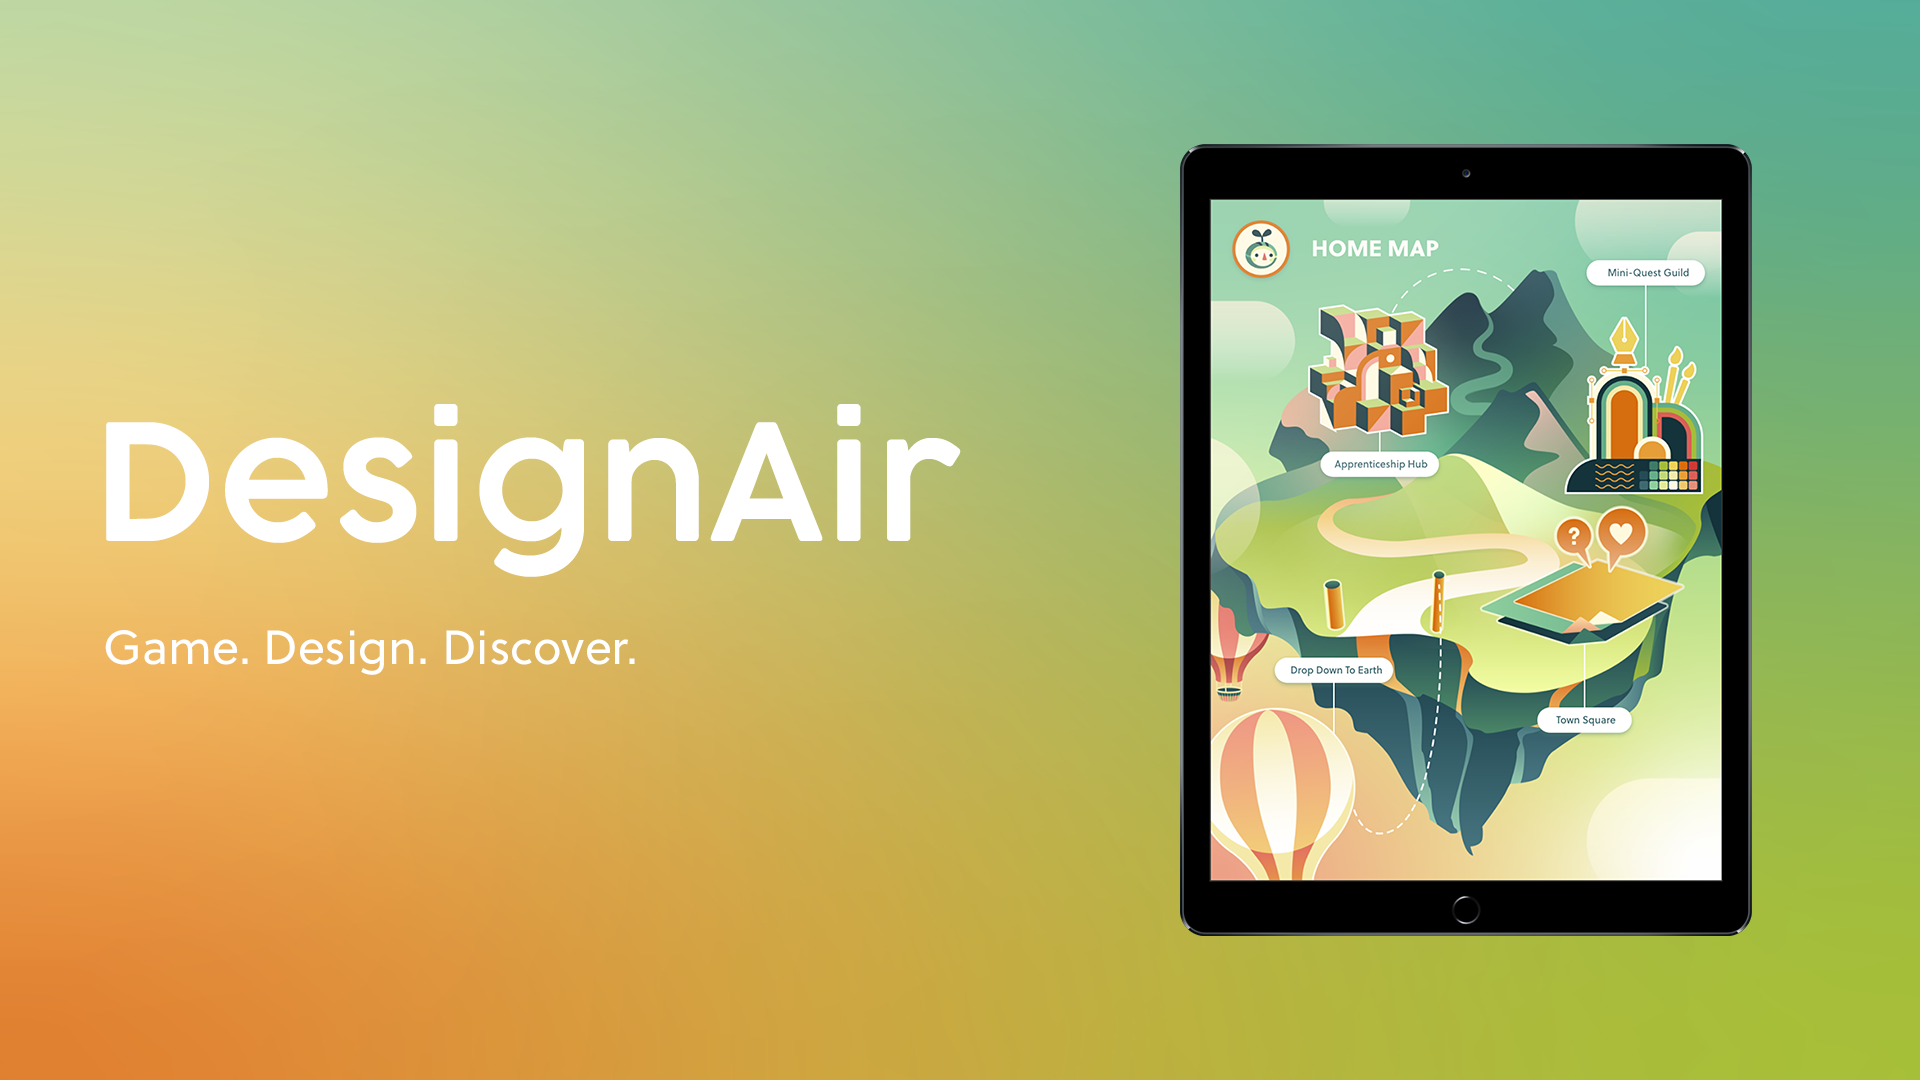 """DesignAir Banner — An iPad with a colorful floating island illustration rests atop a colorful gradient background. On the left side of the image, the word """"DesignAir"""" is written in large white text, and the words """"Game. Design. Discover."""" are written in smaller text beneath."""